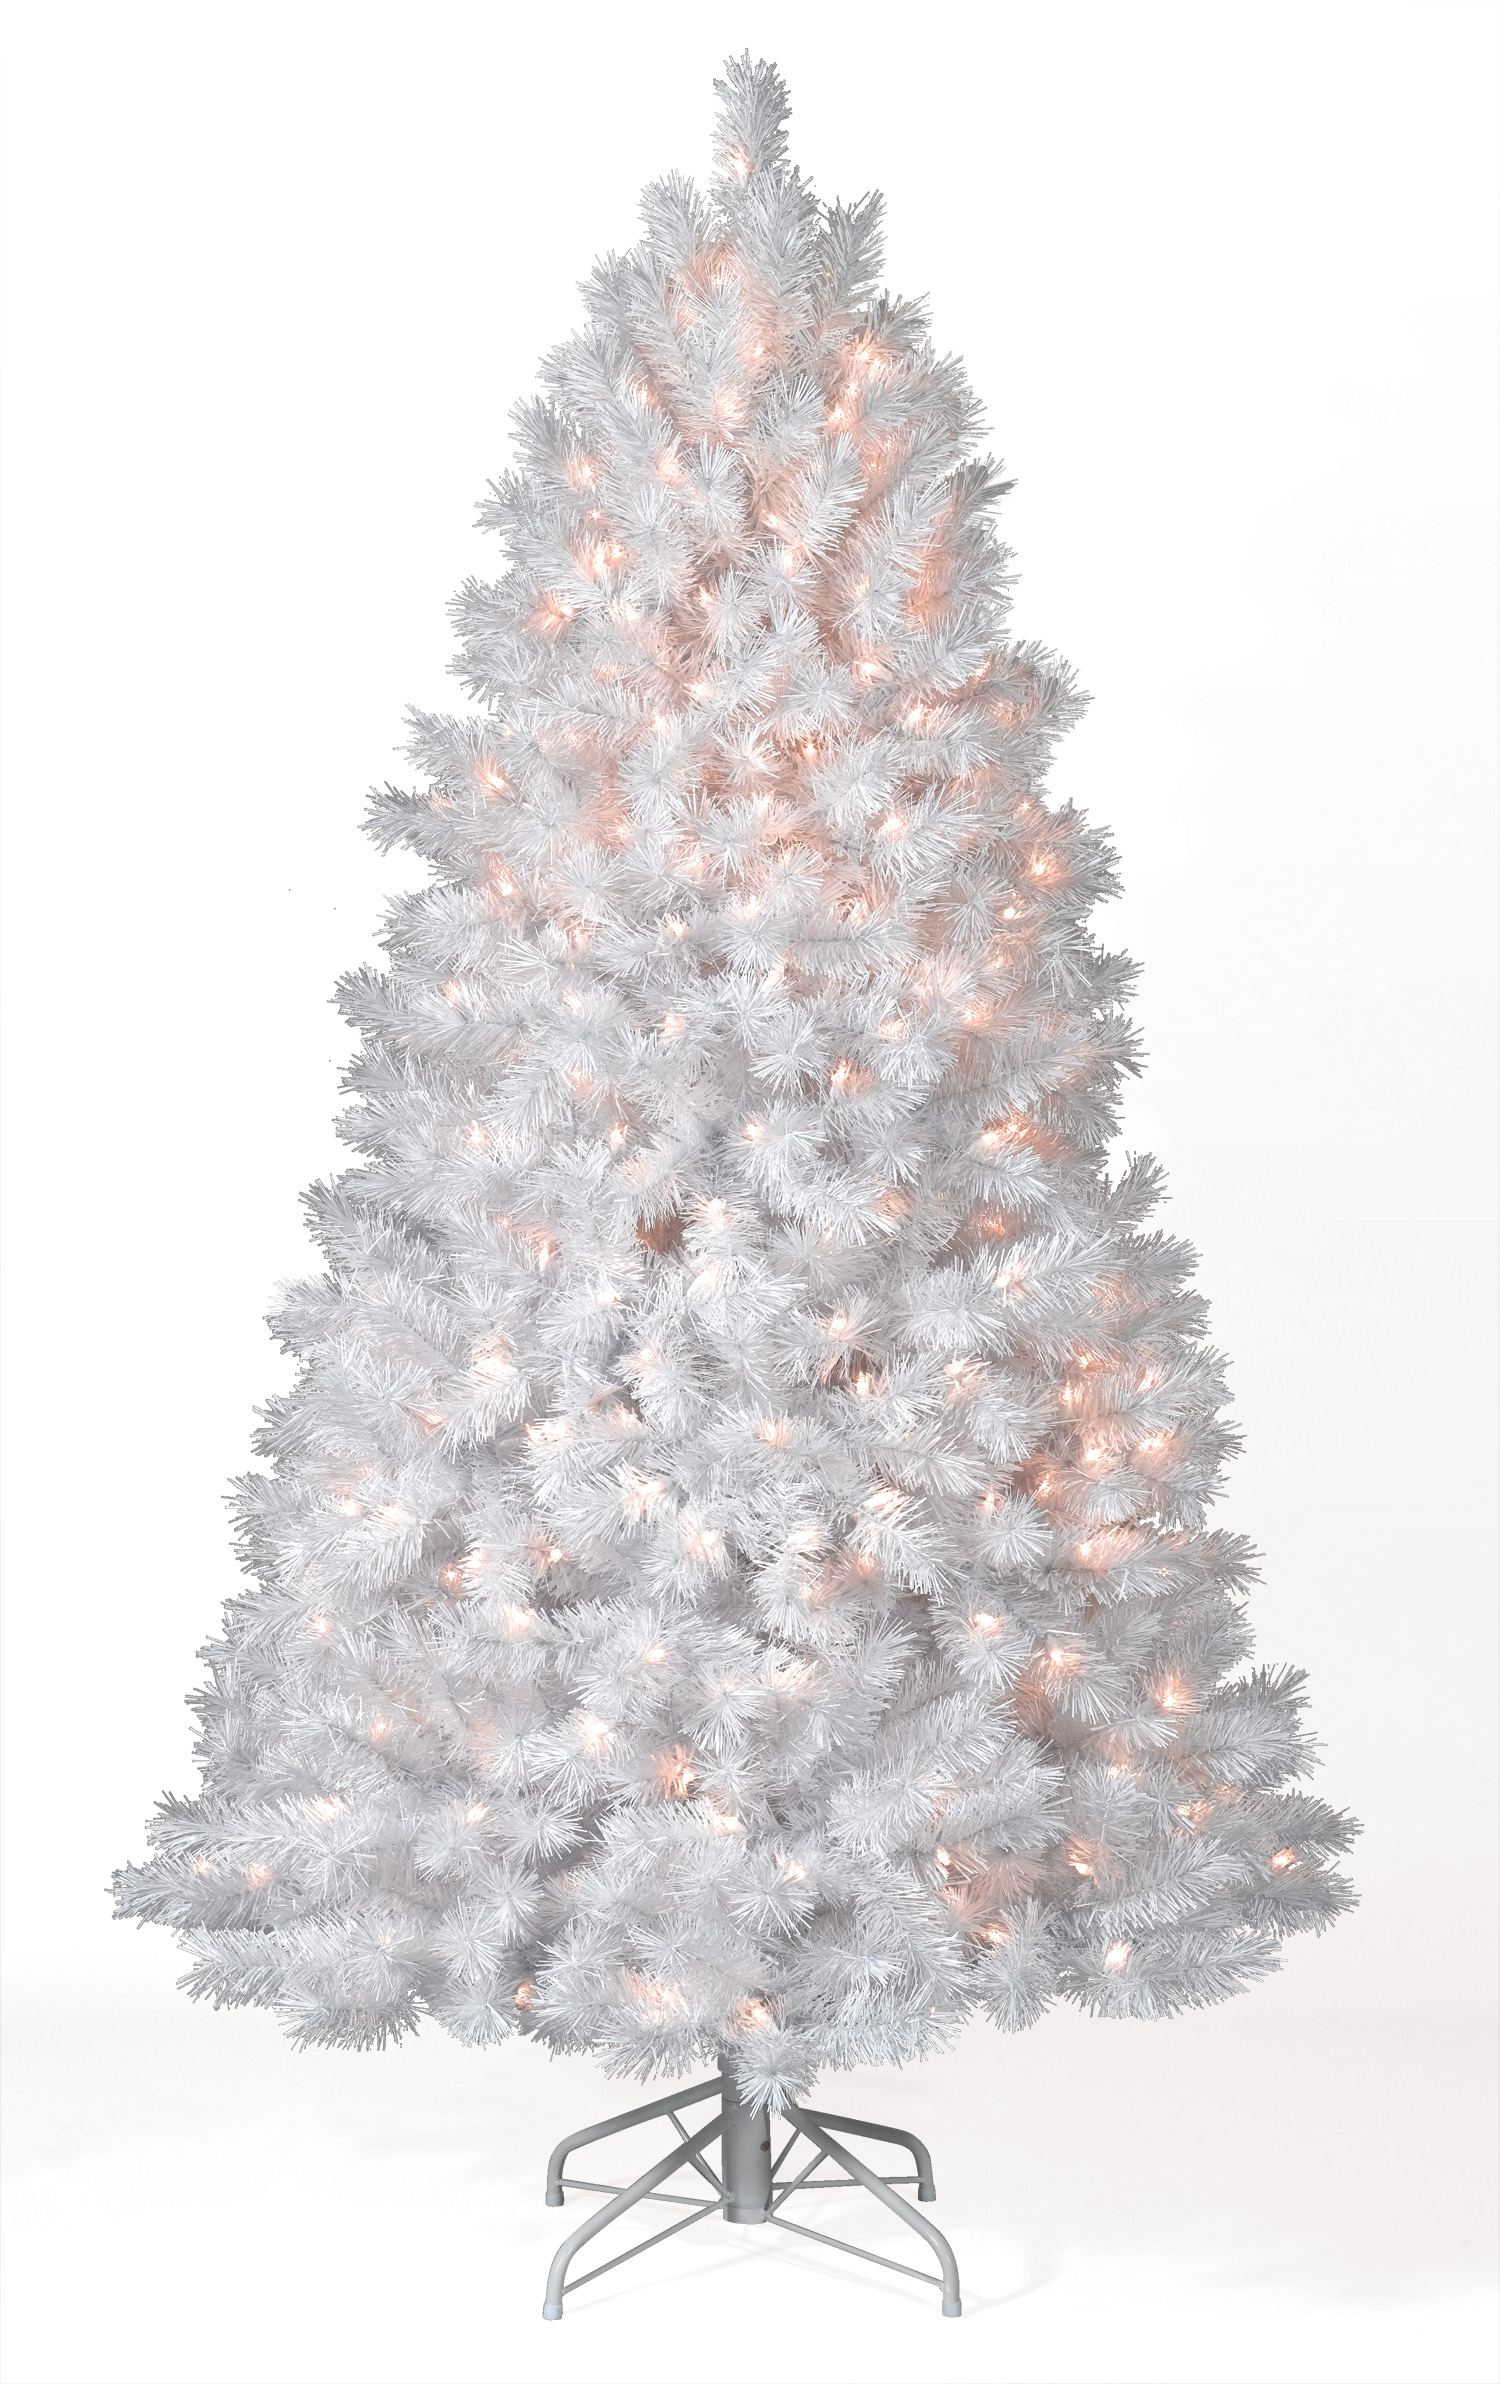 6 foot shimmering white artificial christmas trees with clear lights - White Christmas Tree Pre Lit